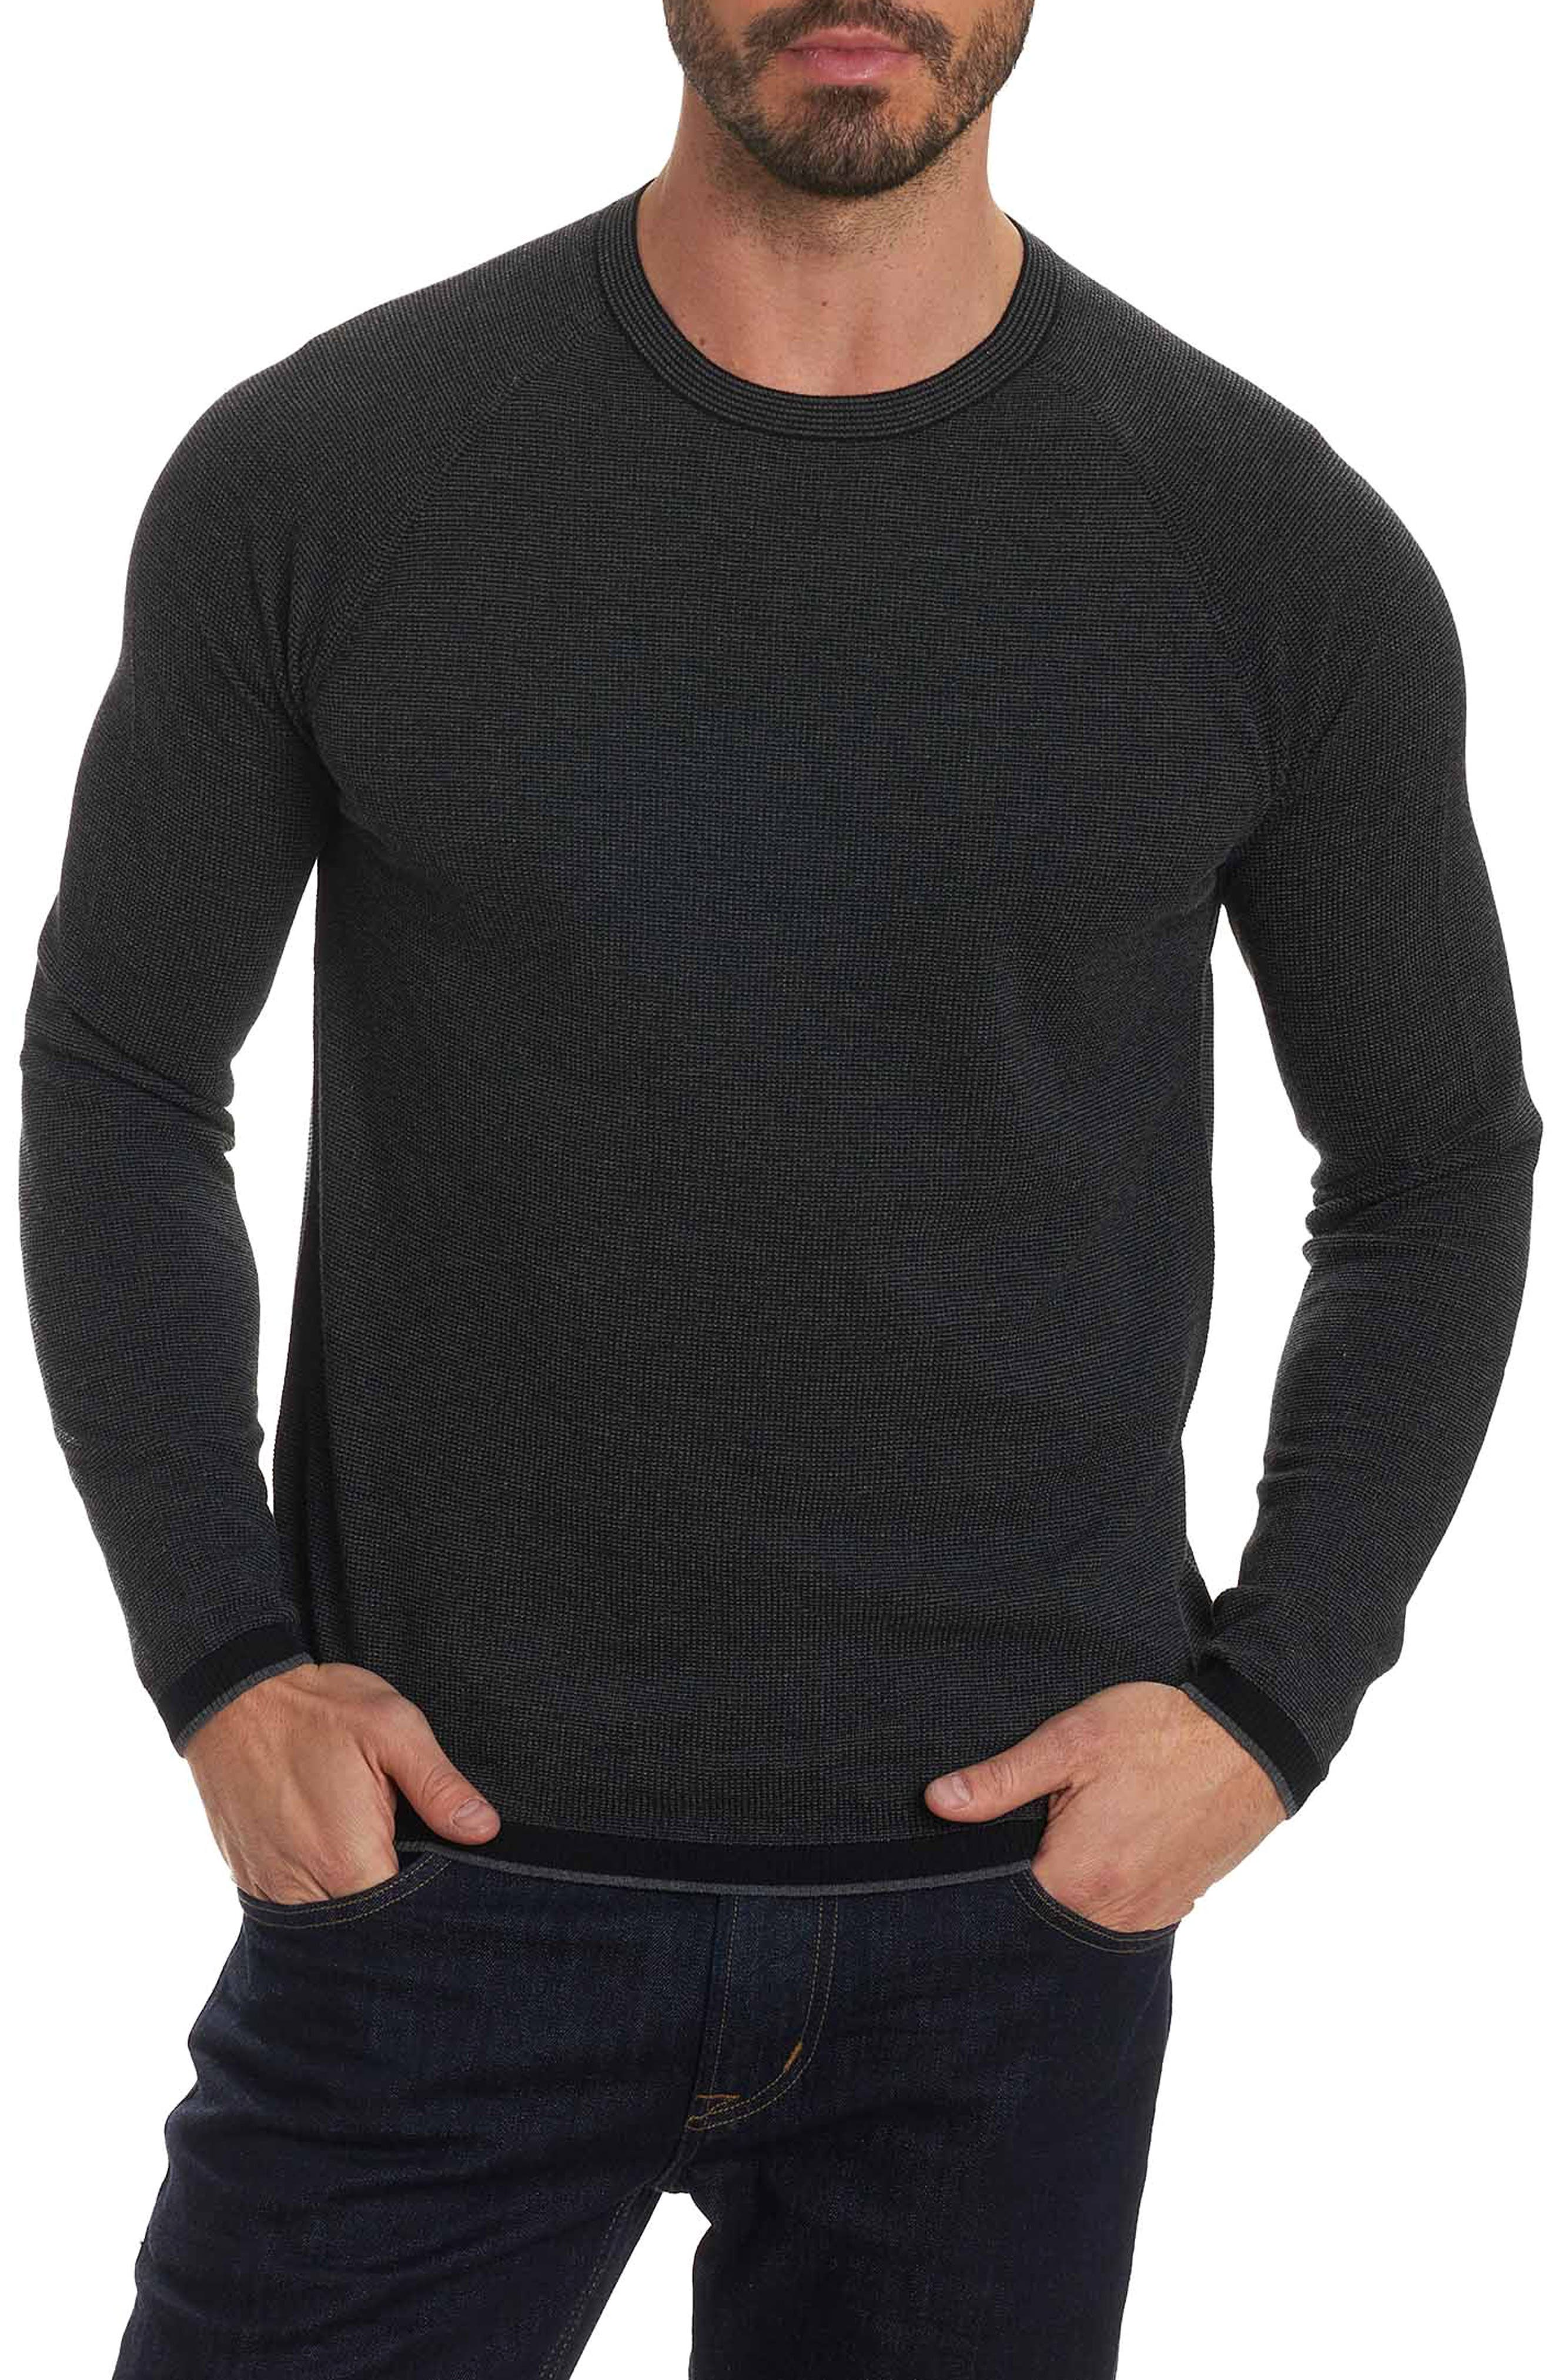 Ray Brook Wool Blend Sweater,                             Main thumbnail 1, color,                             001